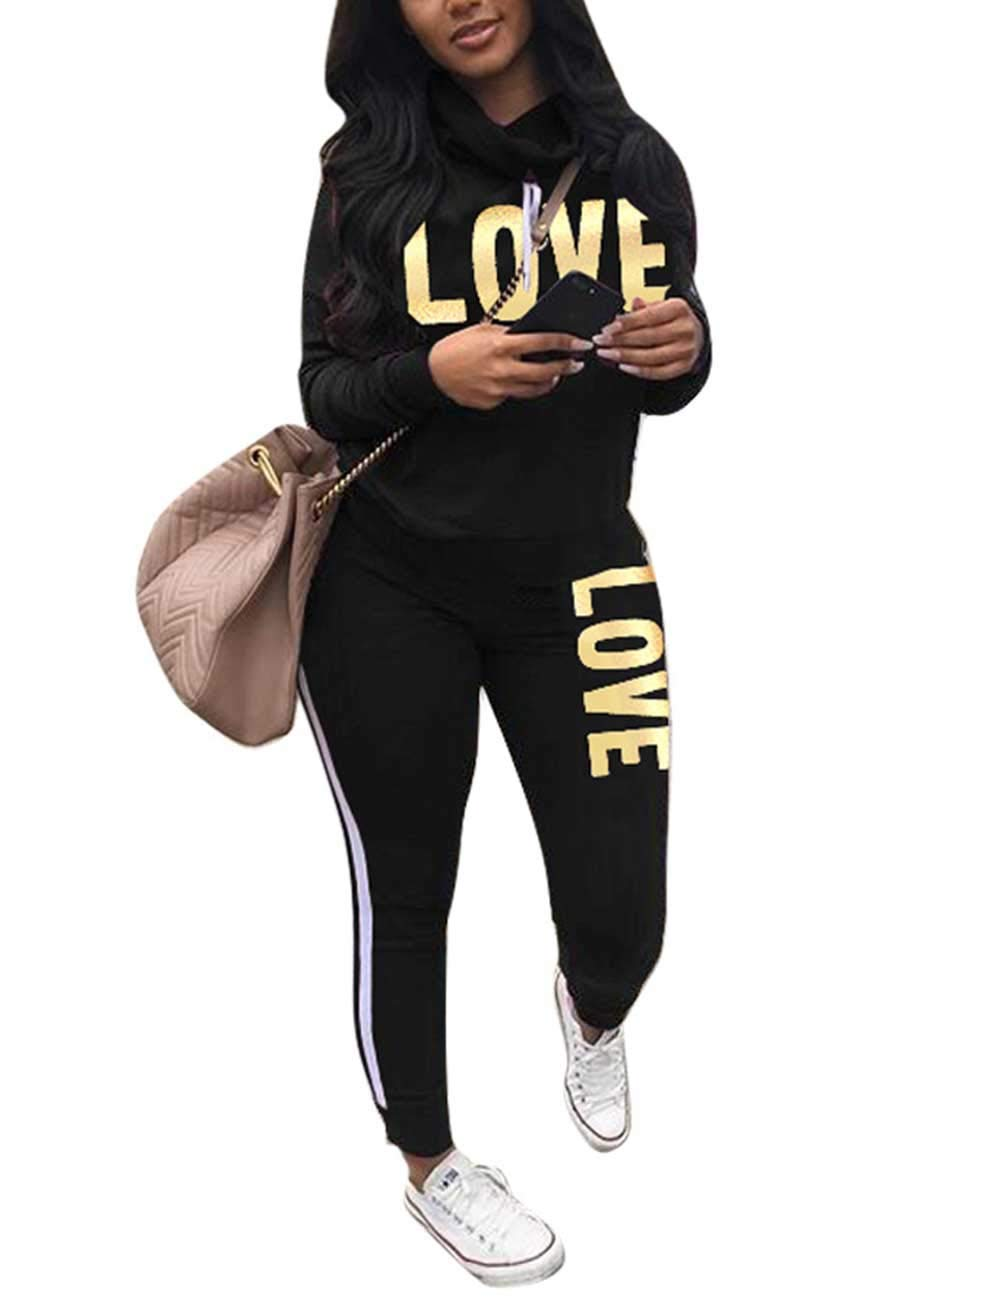 Women's Tracksuit Cowl Neck Long Sleeve Sweatshirt and Sweatpants Set Letter Print 2 Piece Outfits Black 2XL